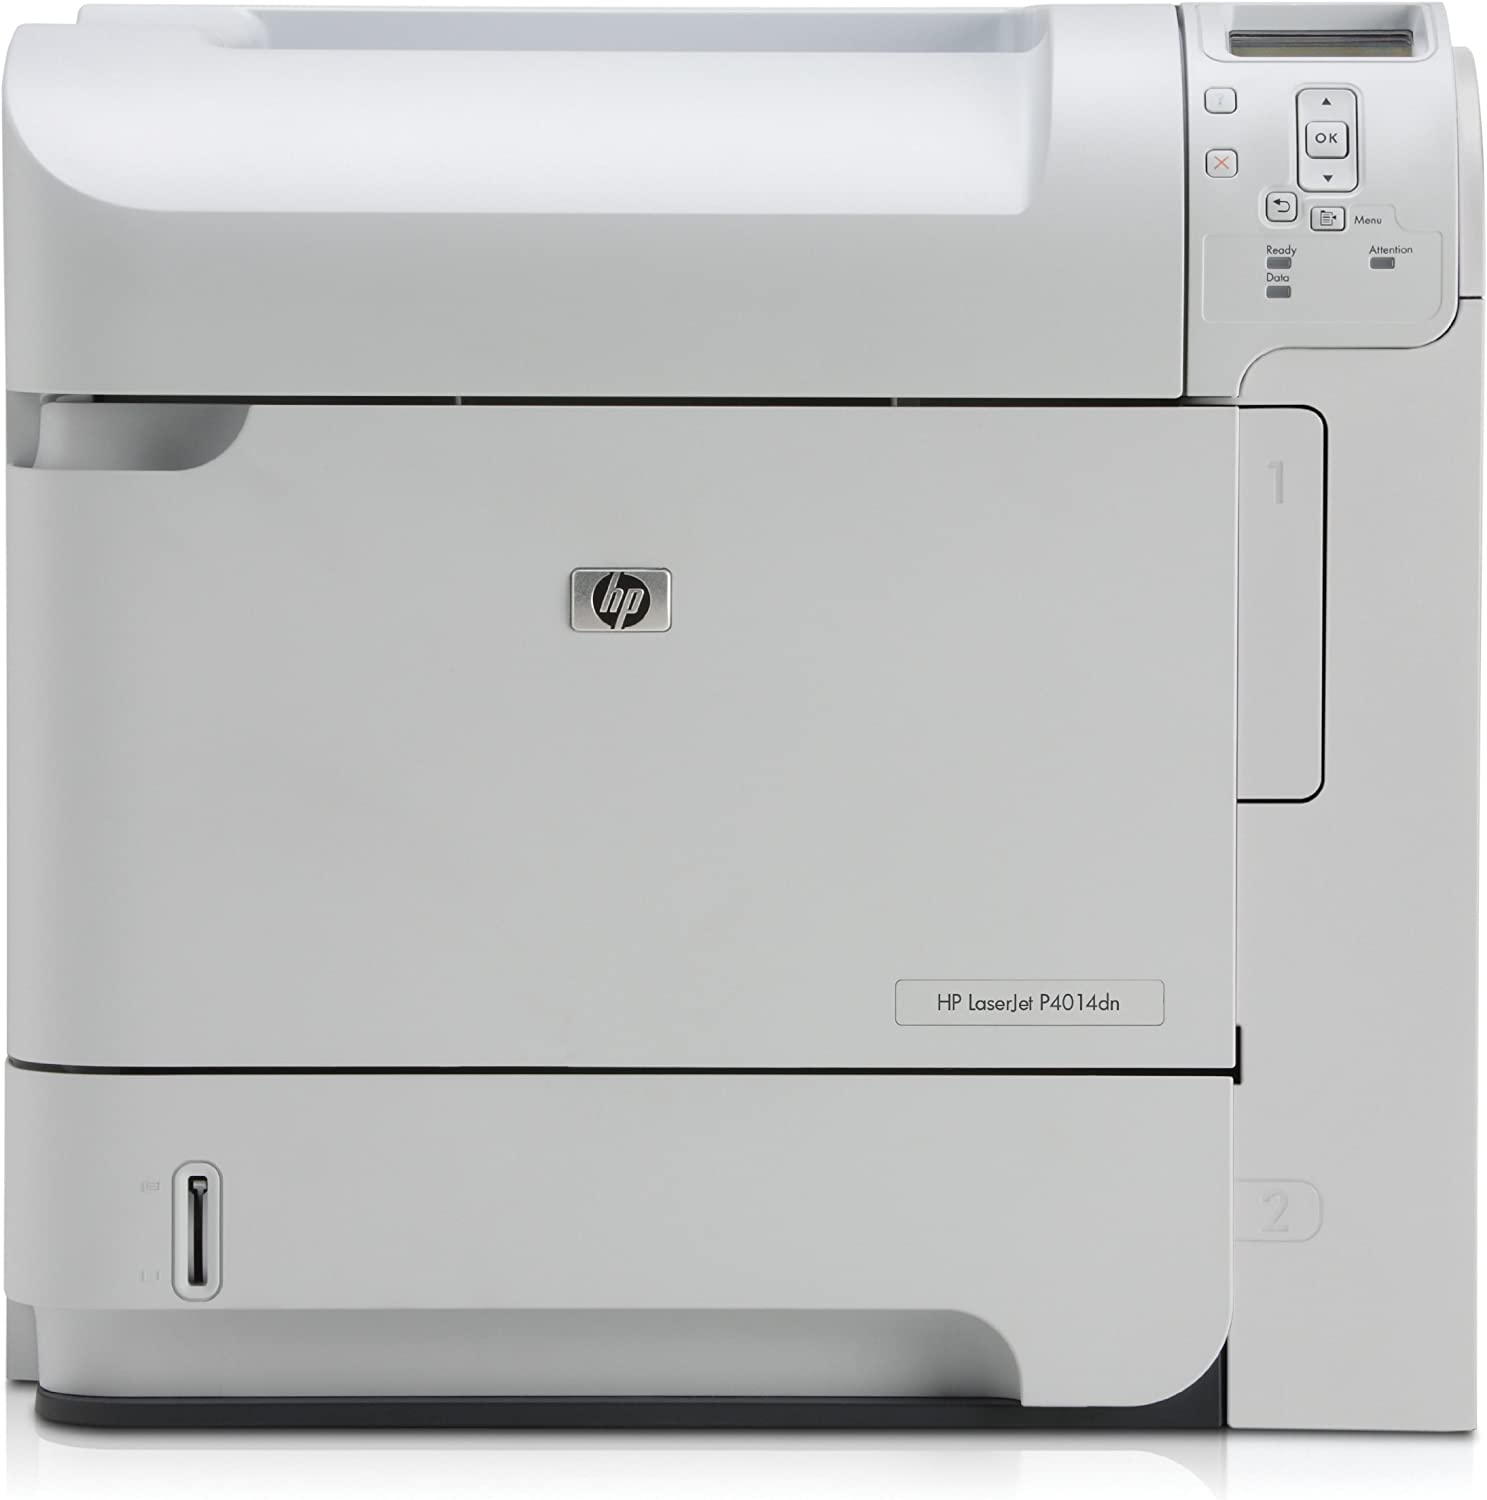 HP LaserJet P4014dn Printer (CB512A)